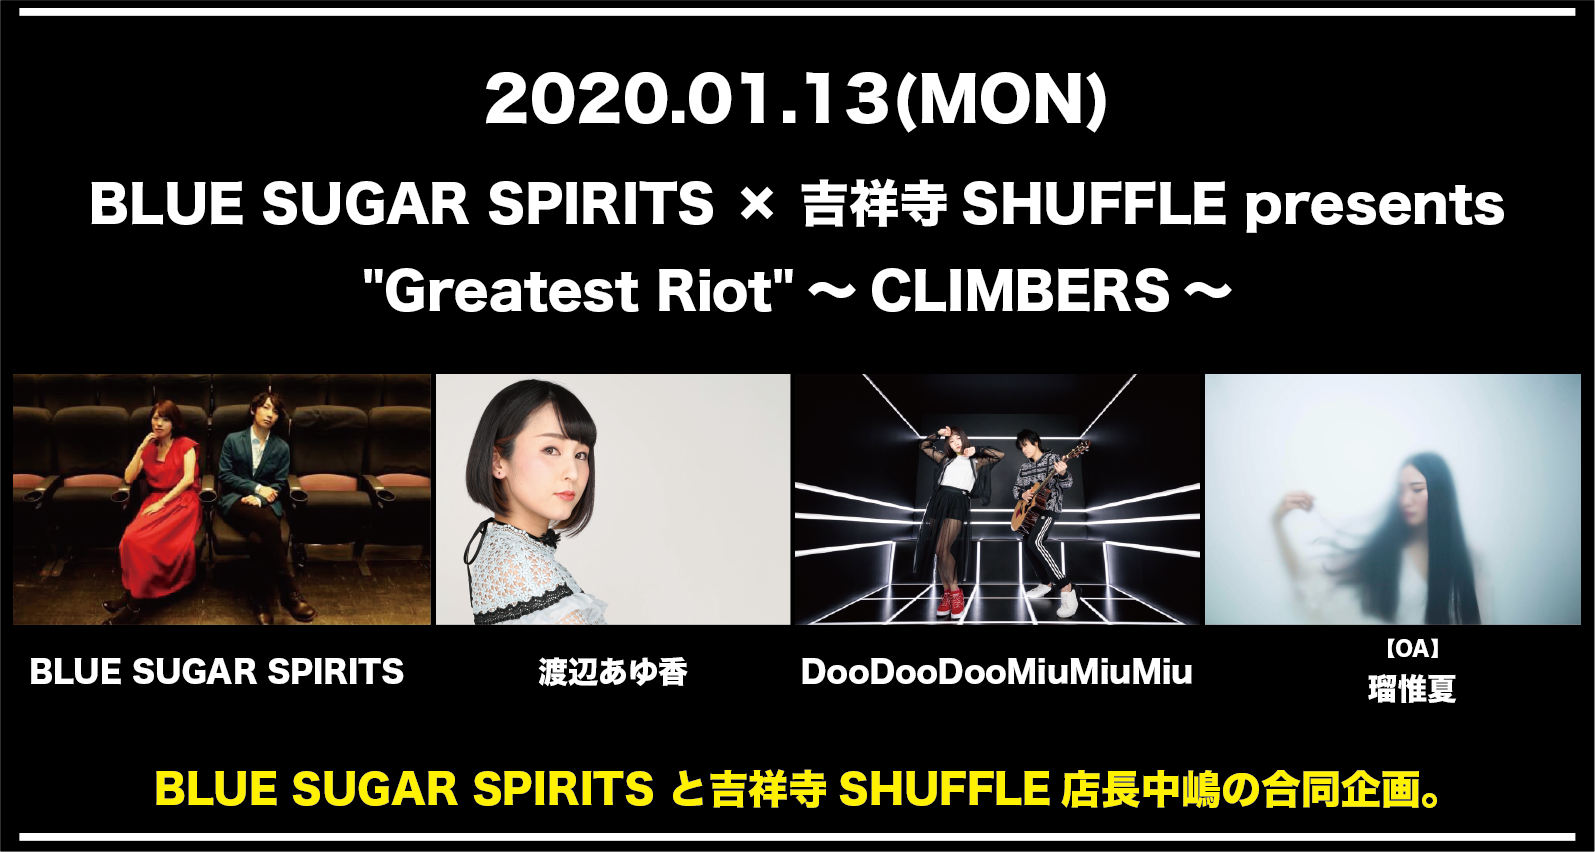 BLUE SUGAR SPIRITS × 吉祥寺SHUFFLE presents